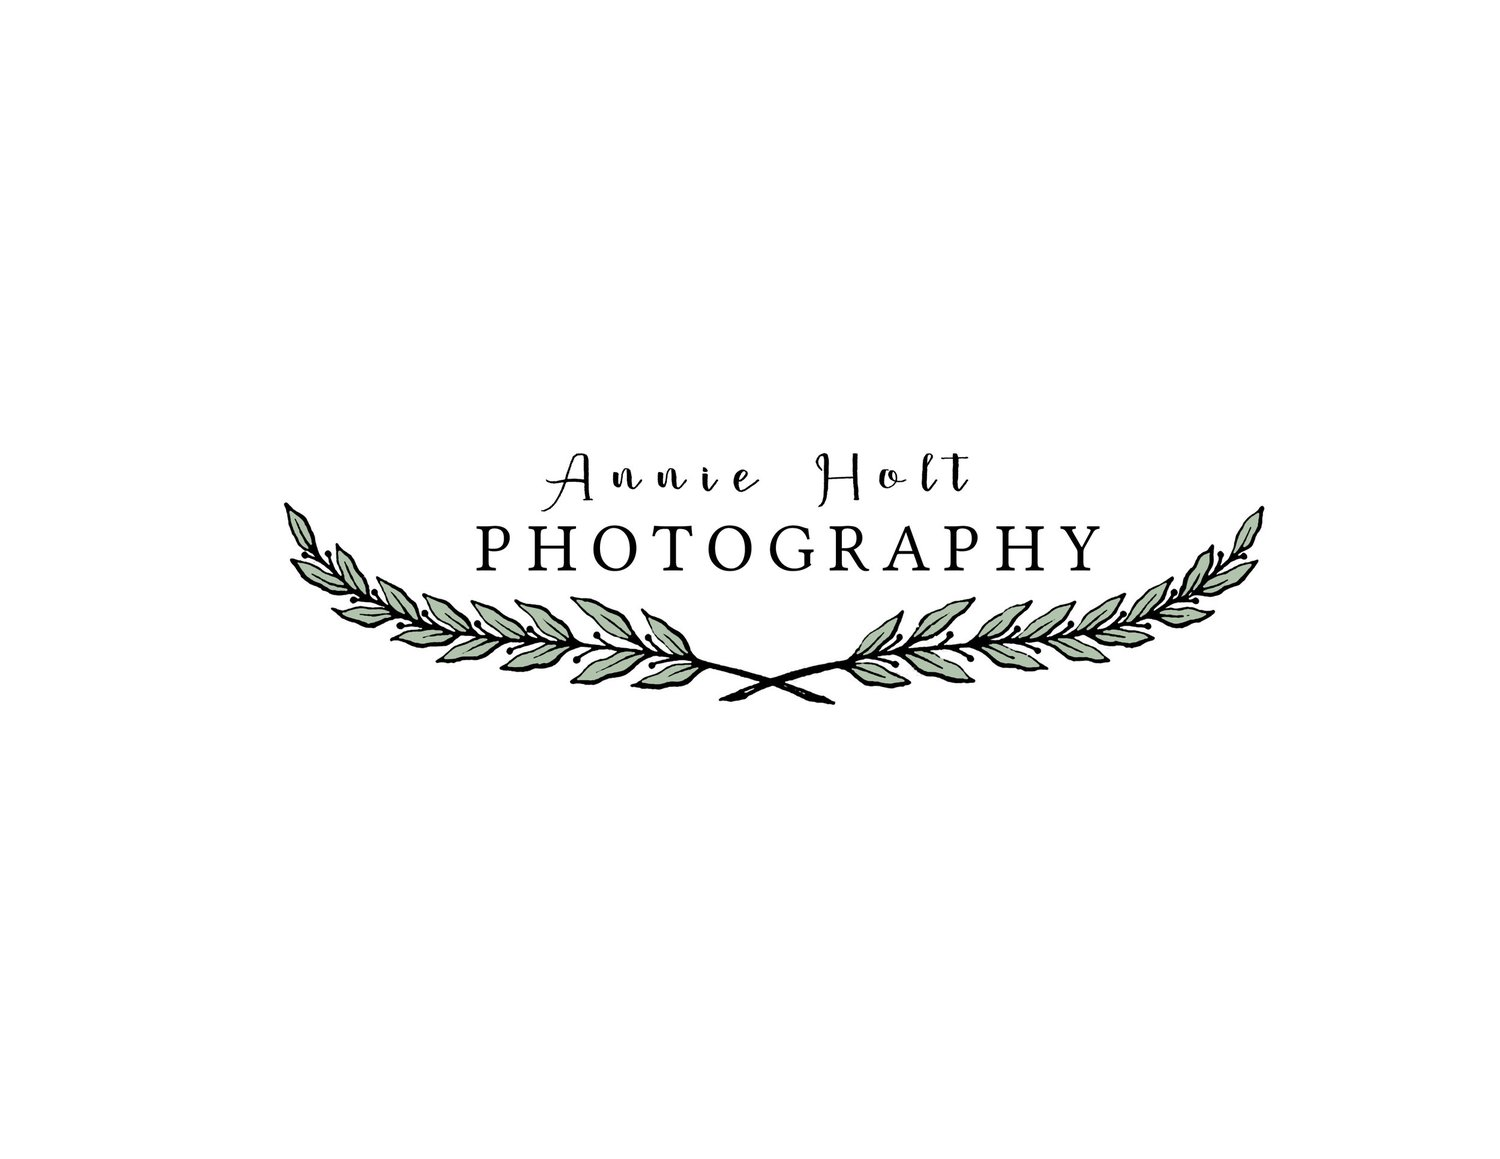 Annie Holt Photography